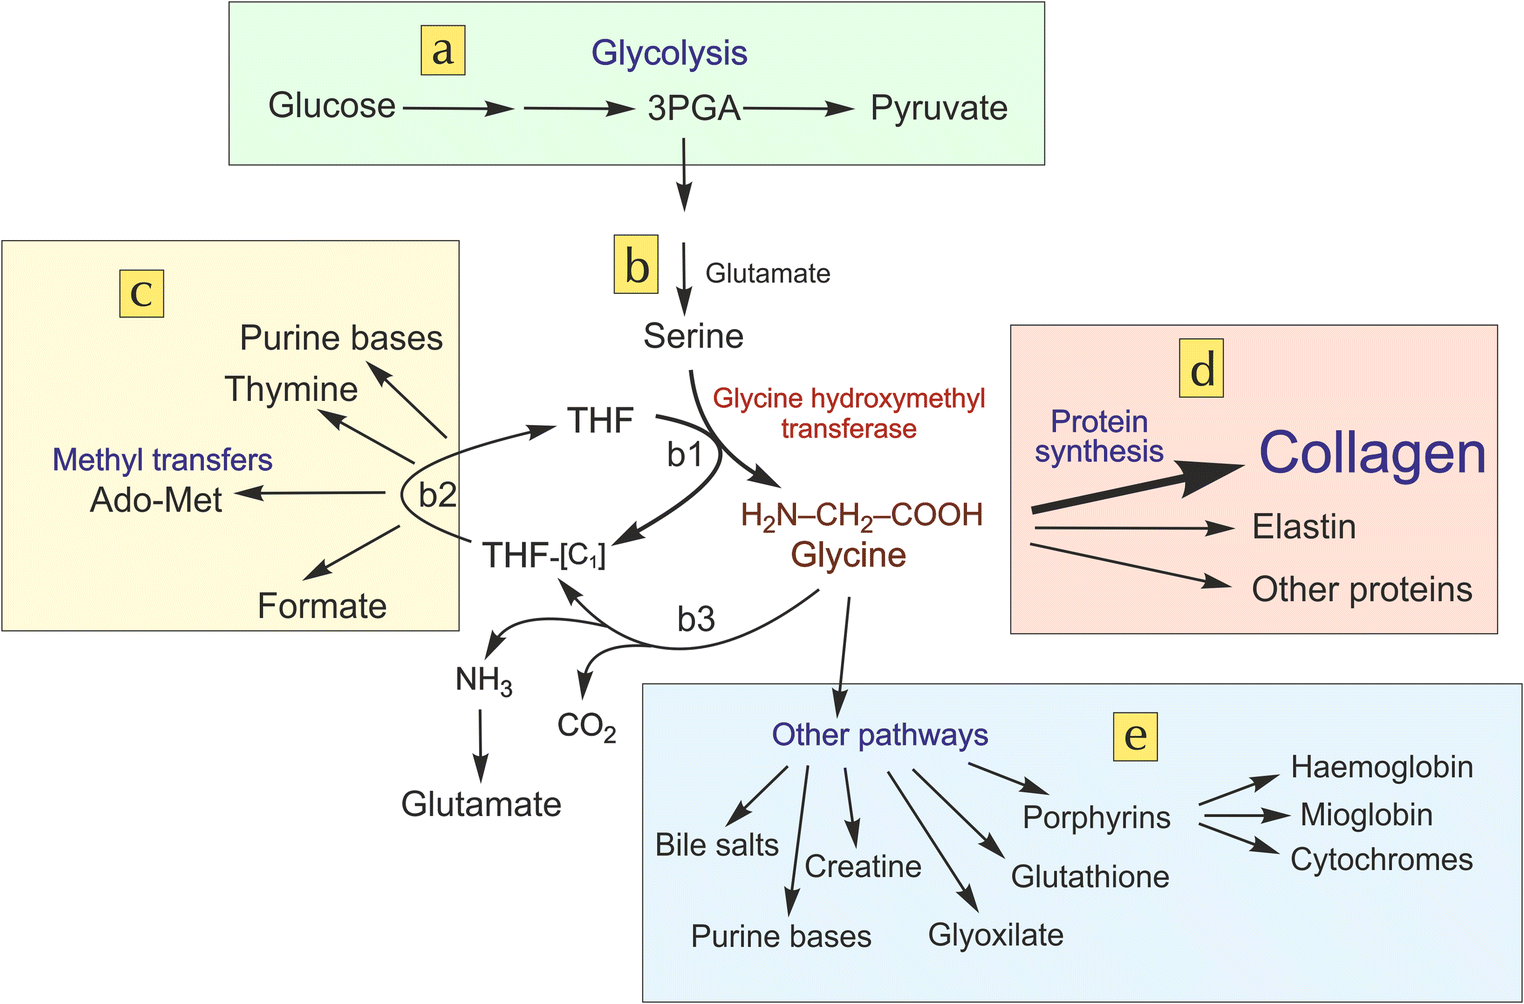 High glycine concentration increases collagen synthesis by articular